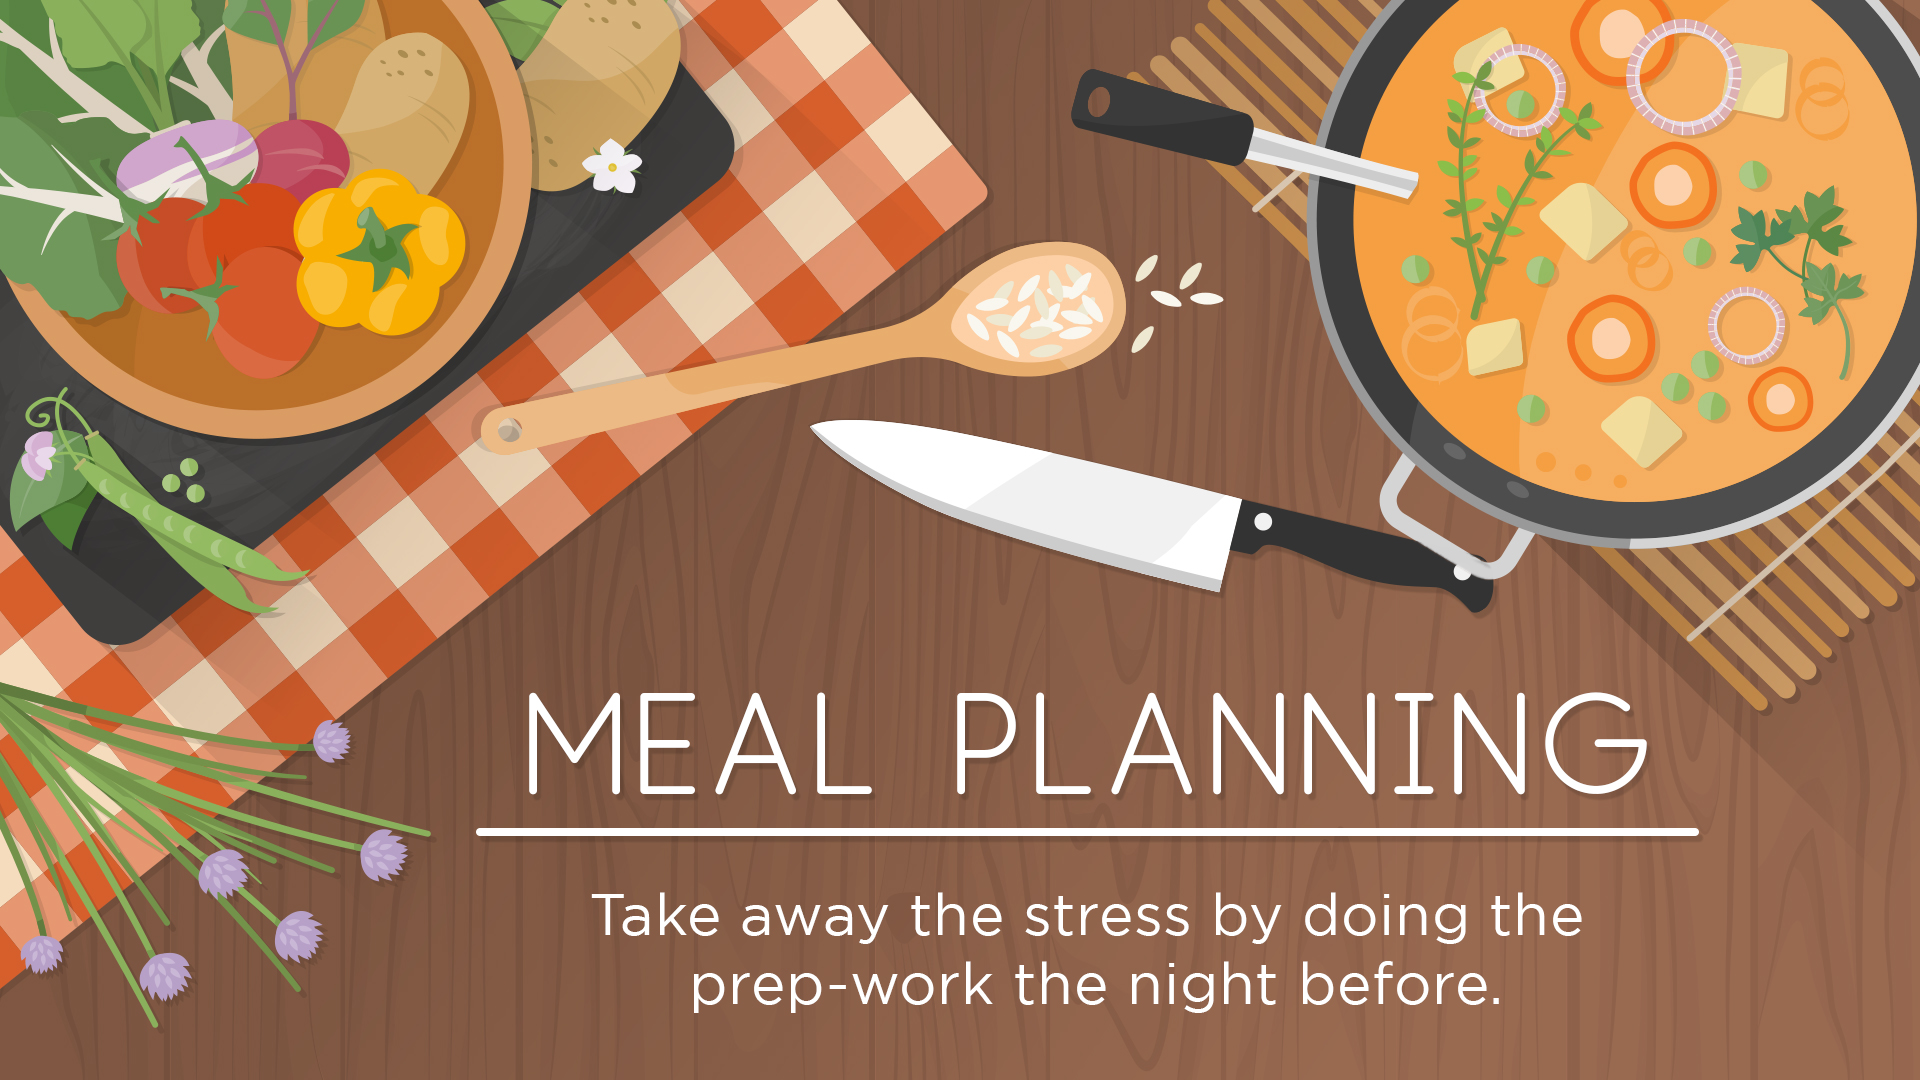 BAILE_OK01_MealPlanning01_March2018.jpg